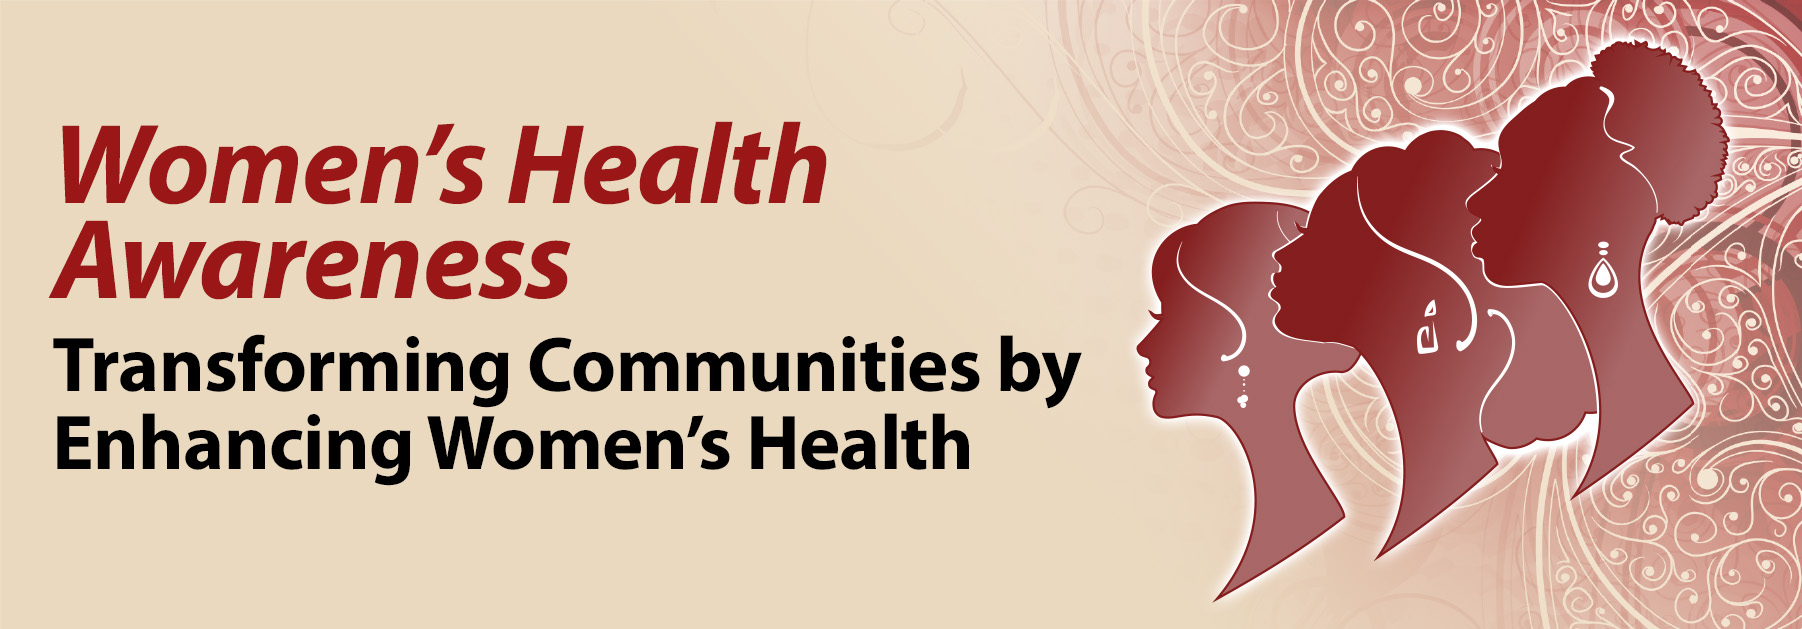 Women's Health Awareness Transforming Communities by Enhancing Women's Health